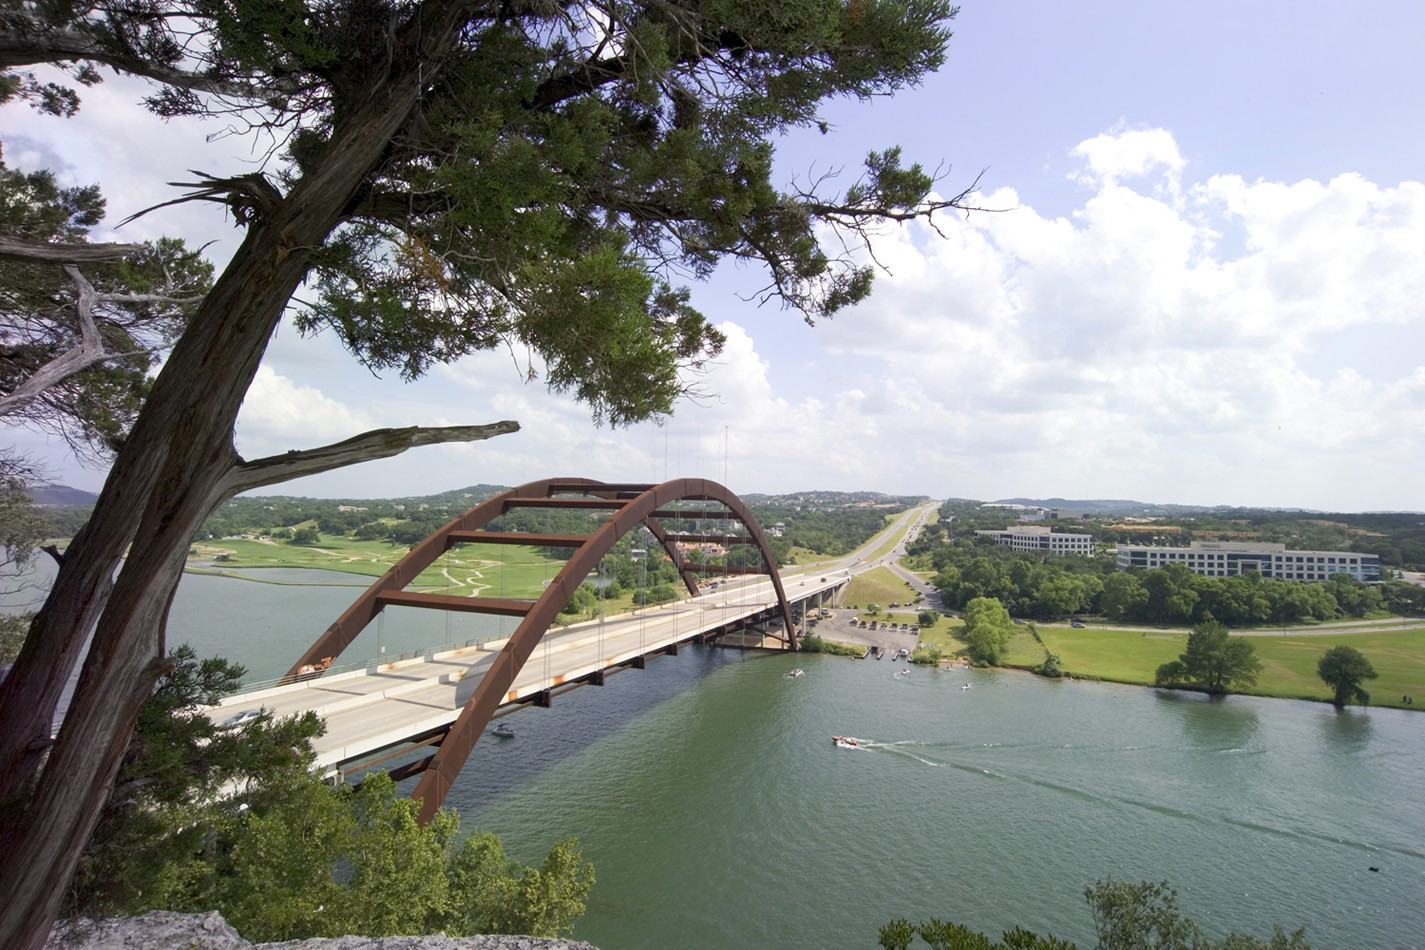 360 Bridge in Austin, TX over Lake Travis